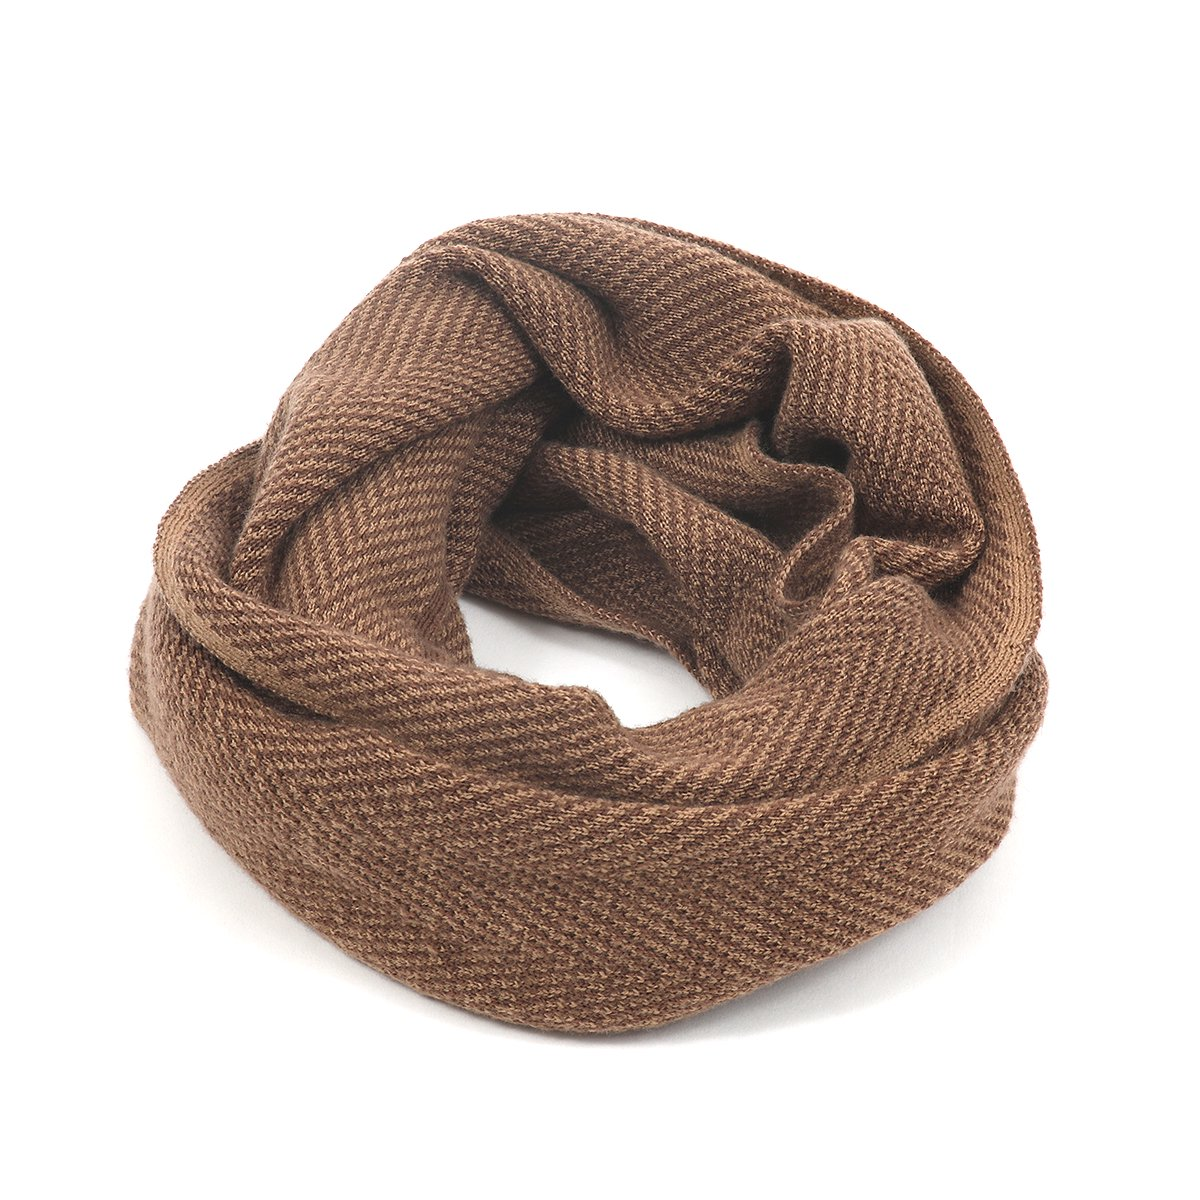 HERRINGBONE TWIST NECKWARMER 詳細画像3